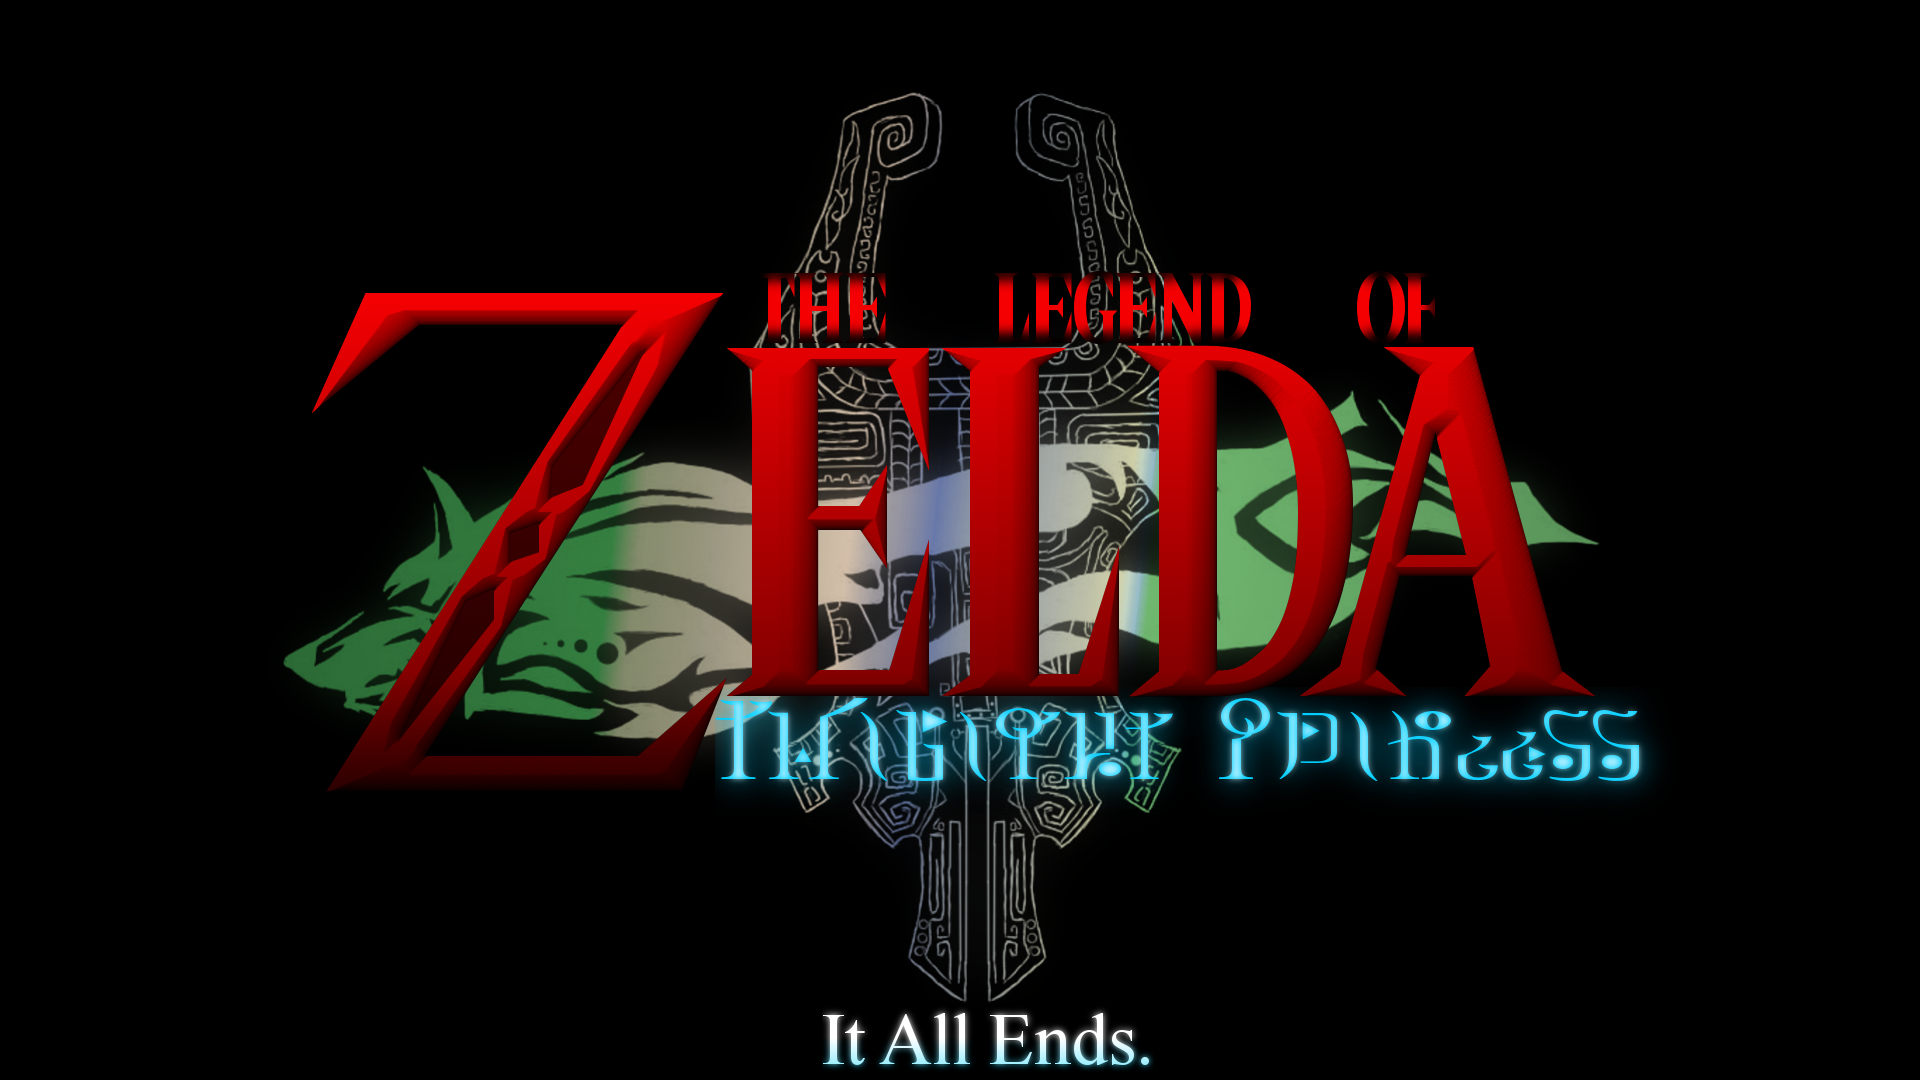 twilight princess logo wallpaper hd by bluesupersonic on